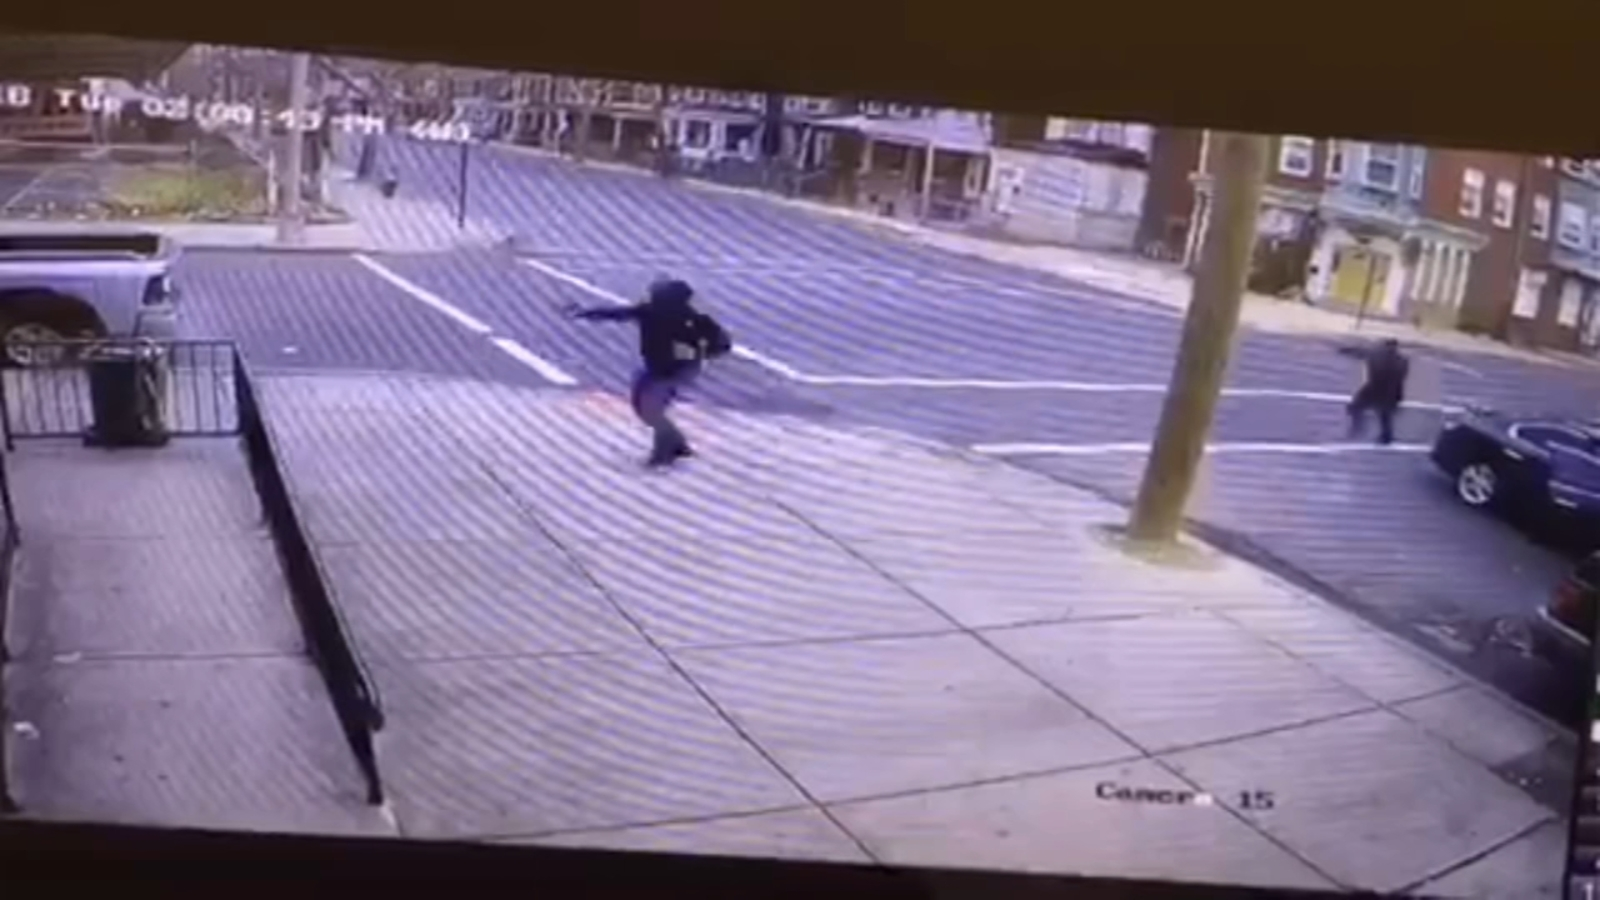 Video Captures Gang Shooting In Trenton New Jersey That Left Woman 19 Dead 6abc Philadelphia